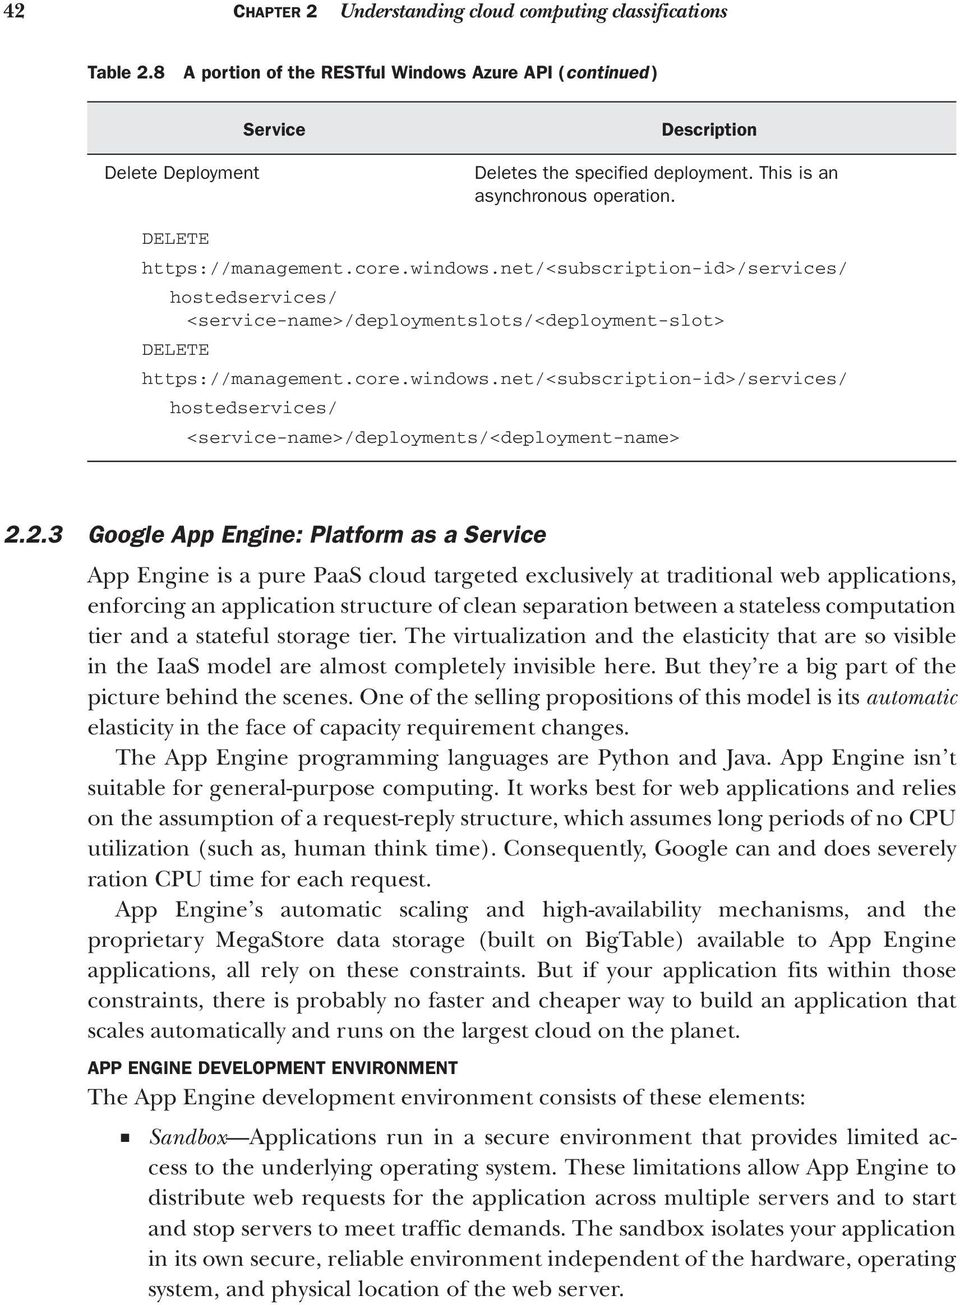 2.3 Google App Engine: Platform as a Service App Engine is a pure PaaS cloud targeted exclusively at traditional web applications, enforcing an application structure of clean separation between a